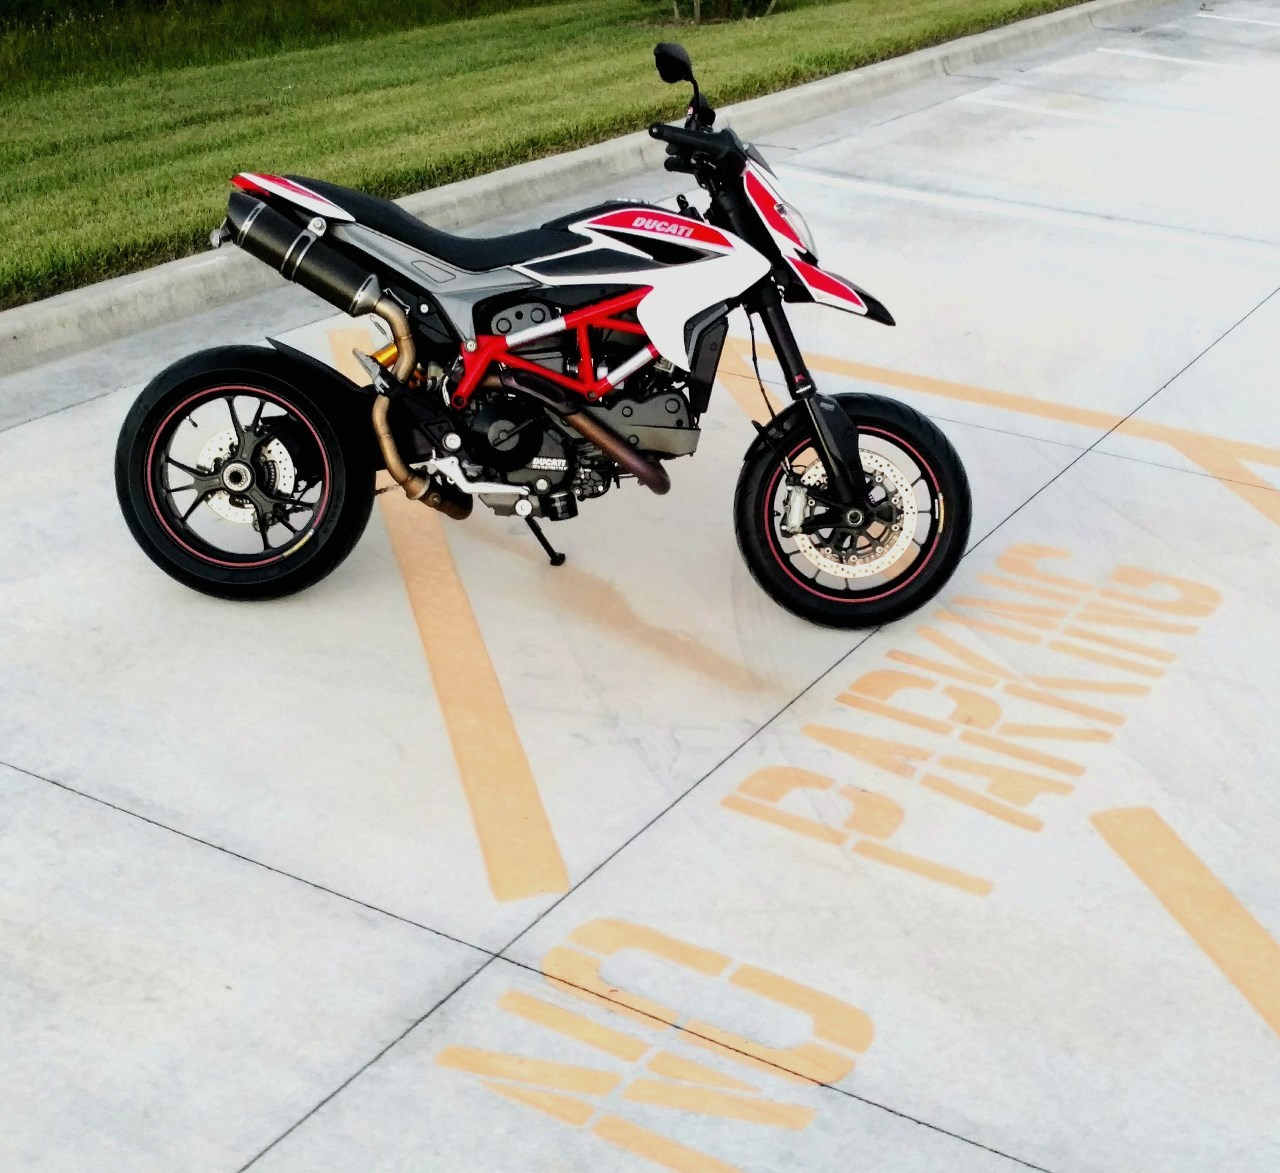 Motorcycles For Sale: 211,840 Motorcycles - CycleTrader.com